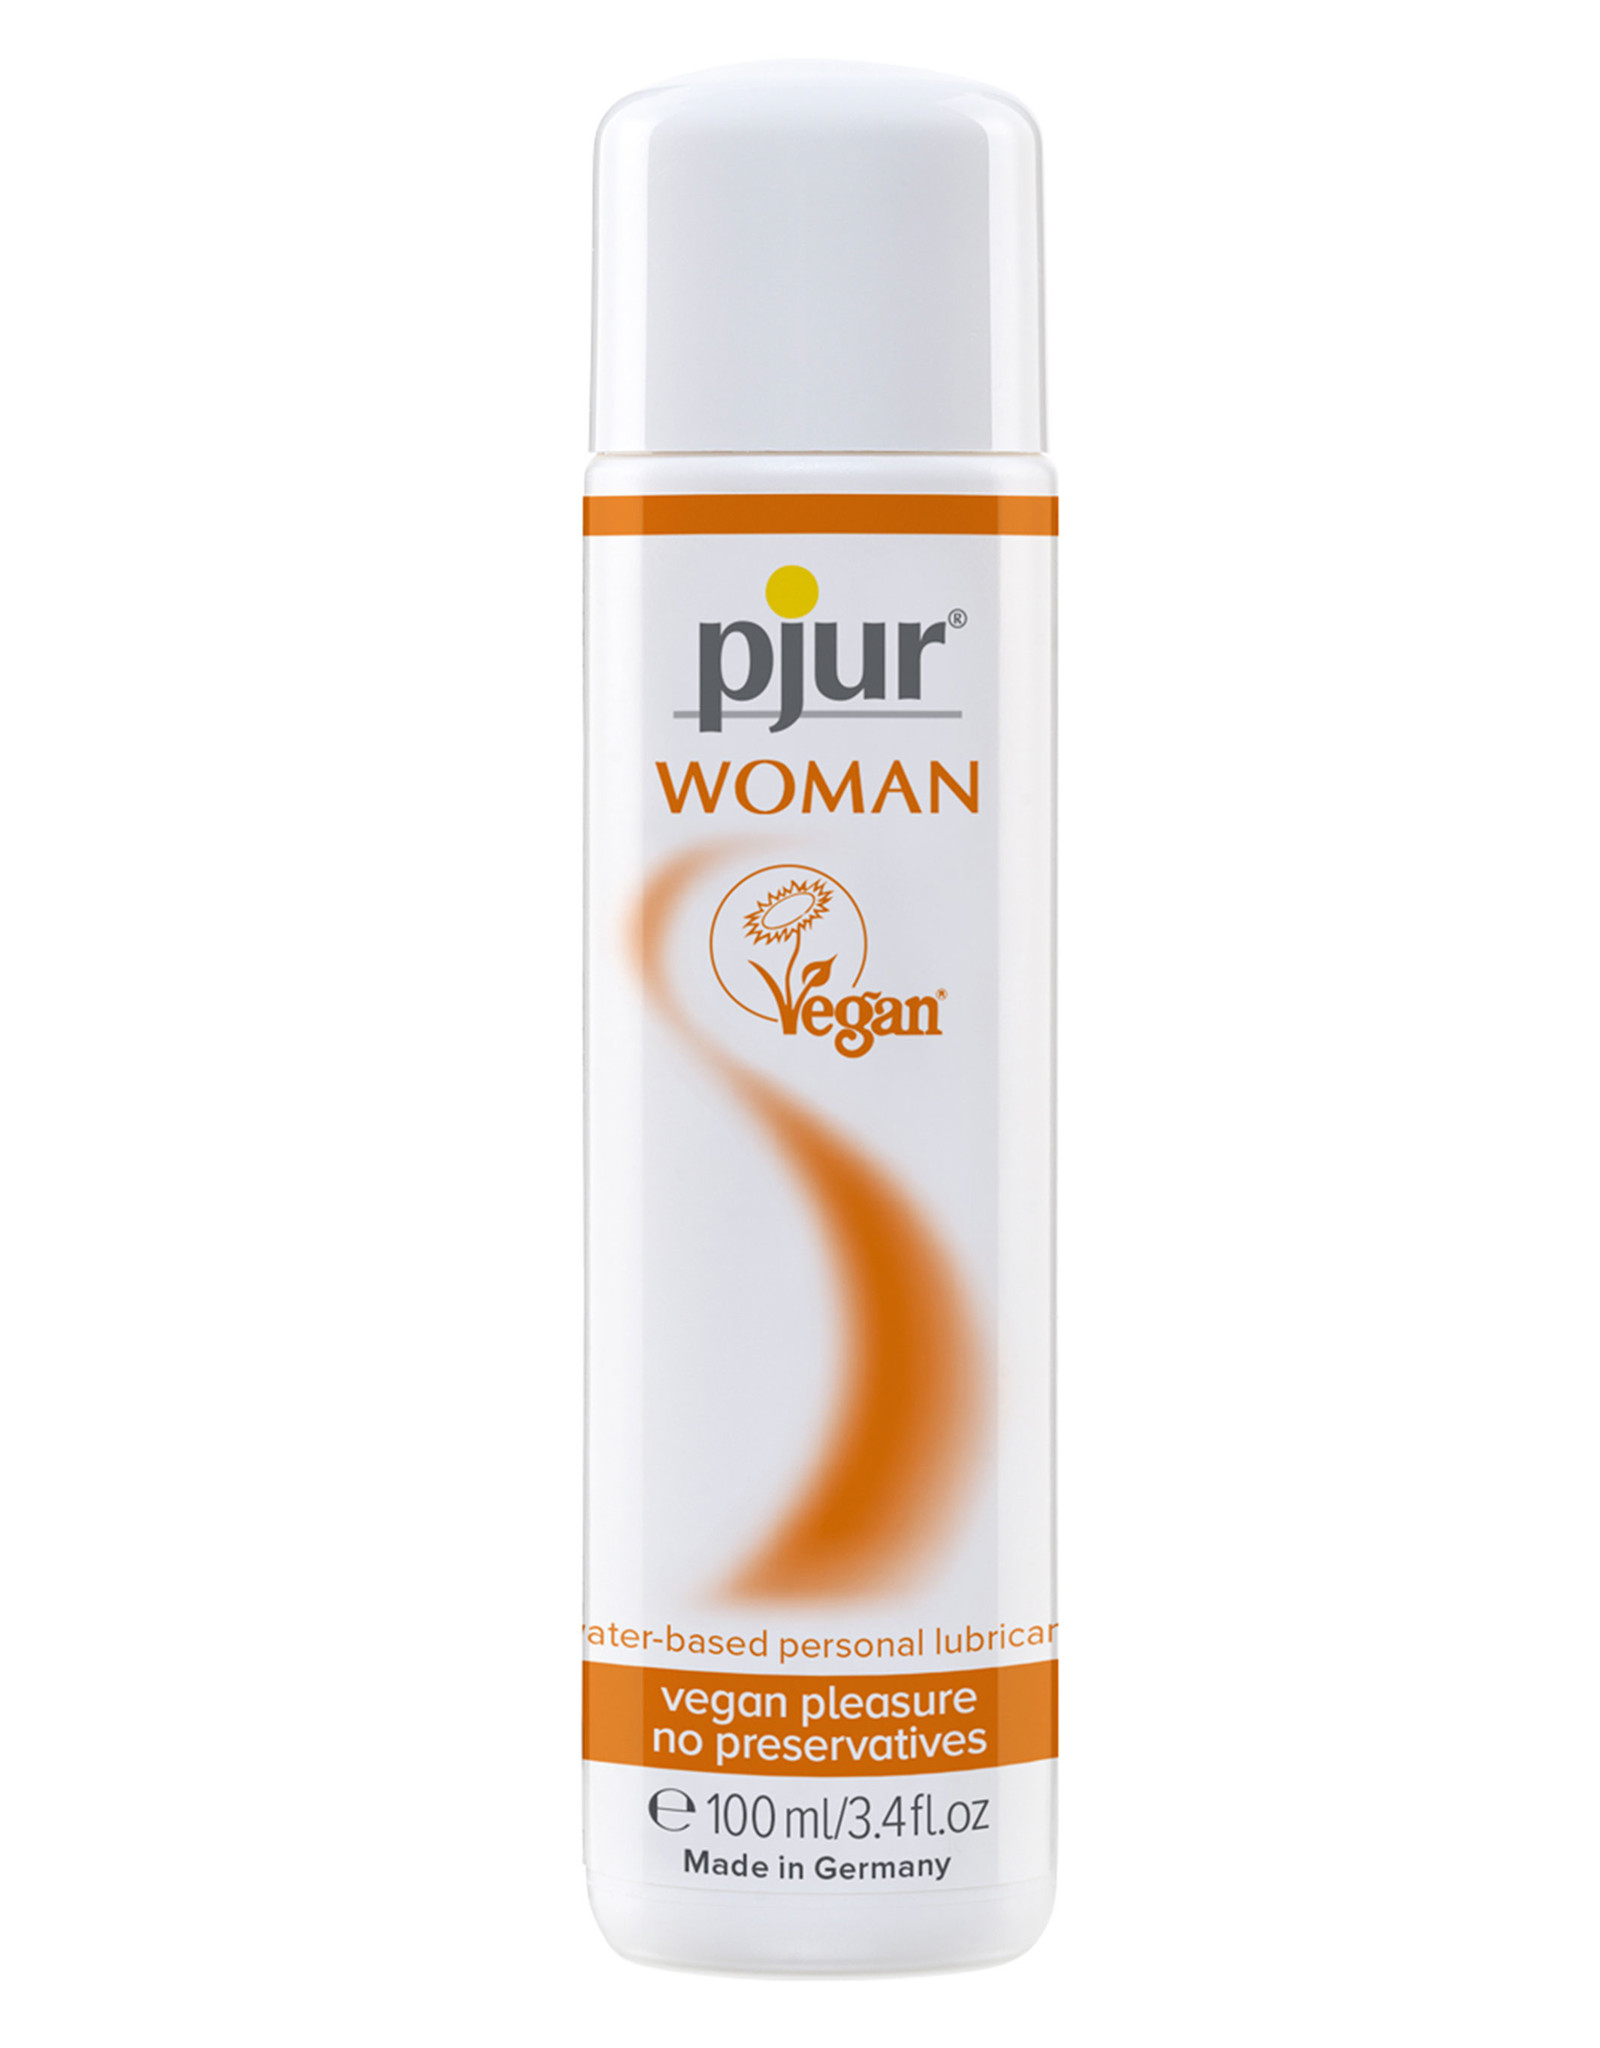 Pjur Pjur woman vegan